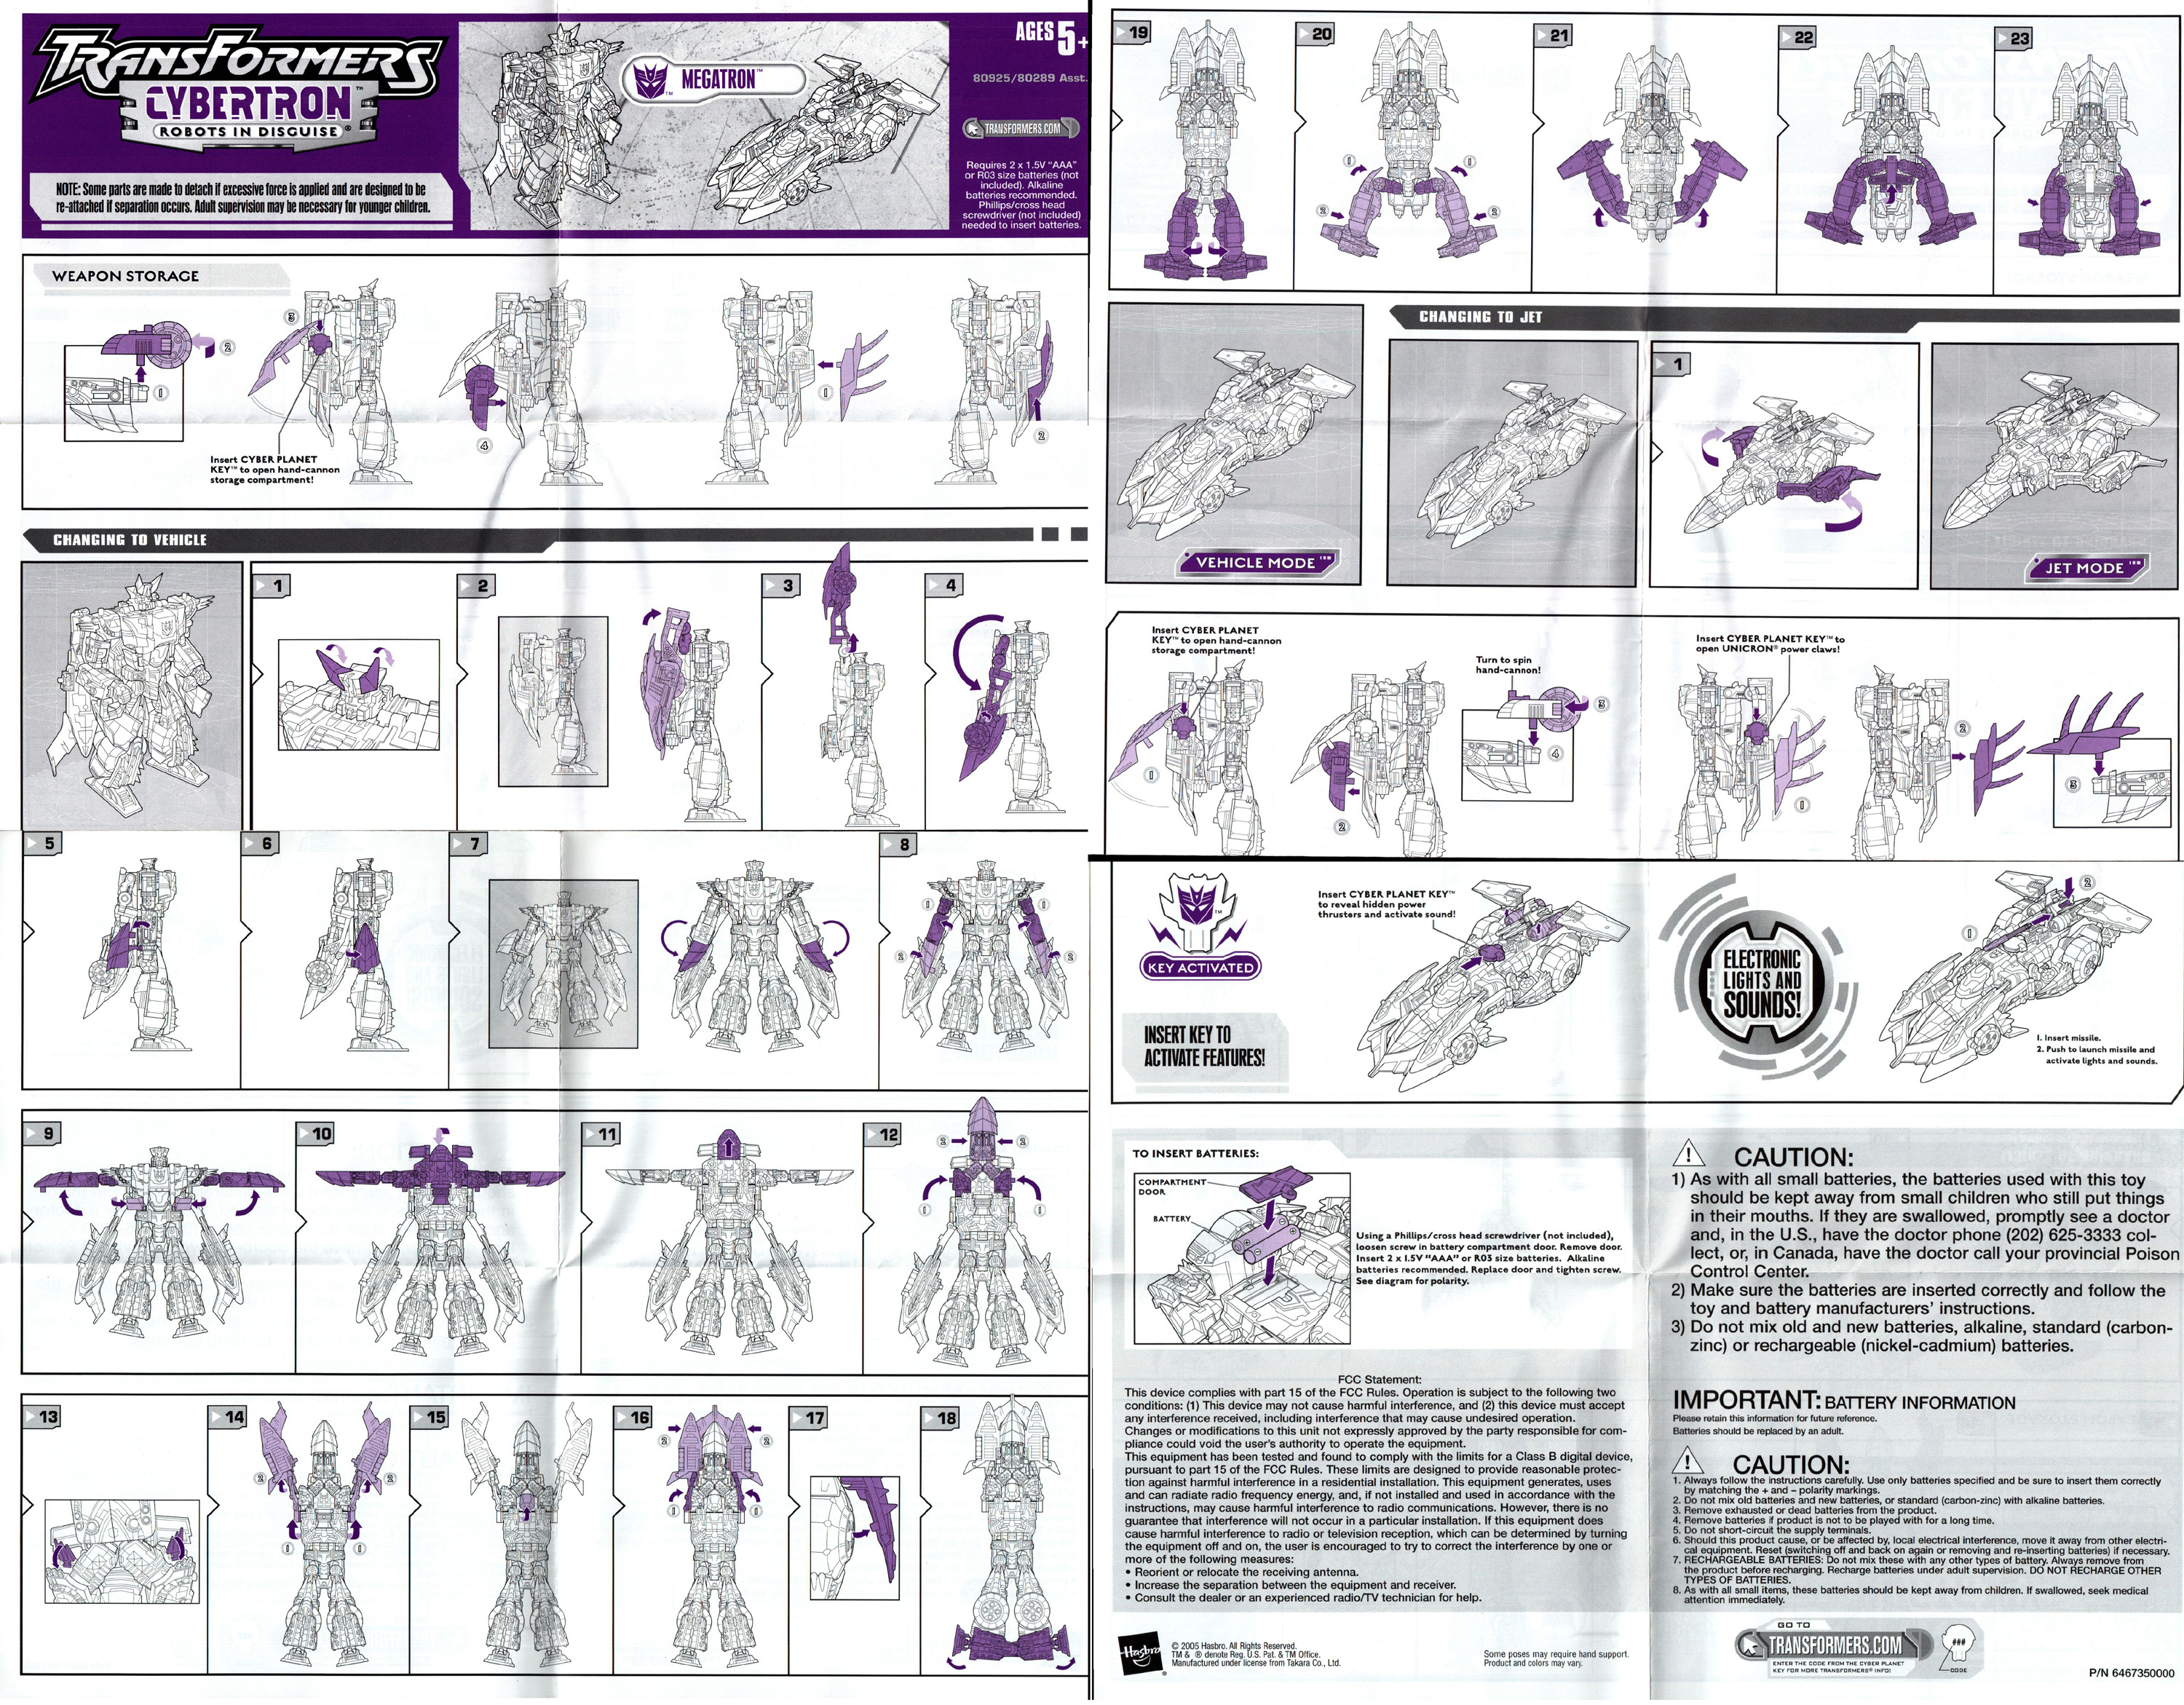 Transformers cybertron megatron leader class action fig.